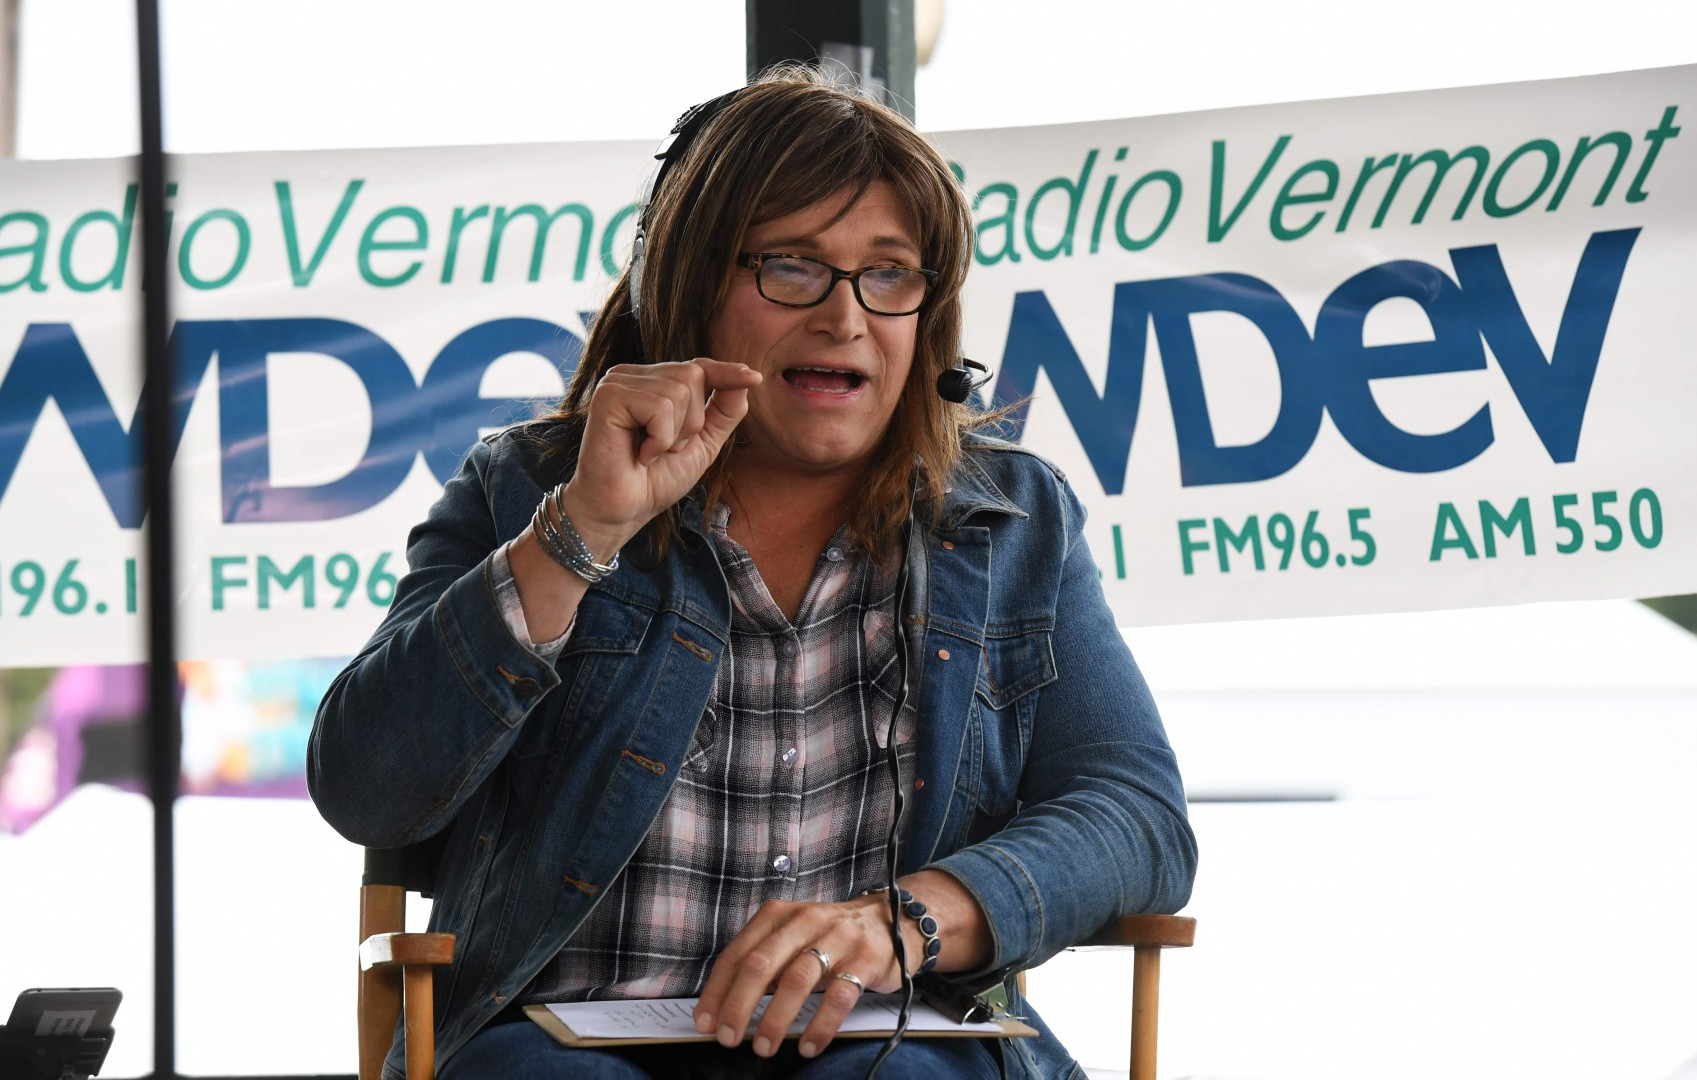 Christine Hallquist, Vermont Democratic gubernatorial challenger, answers questions during a debate with Vermont Governor Phil Scott September 14, 2018 at the Tunbridge World's Fair in Tunbridge Vermont. (Photo by Don EMMERT / AFP)